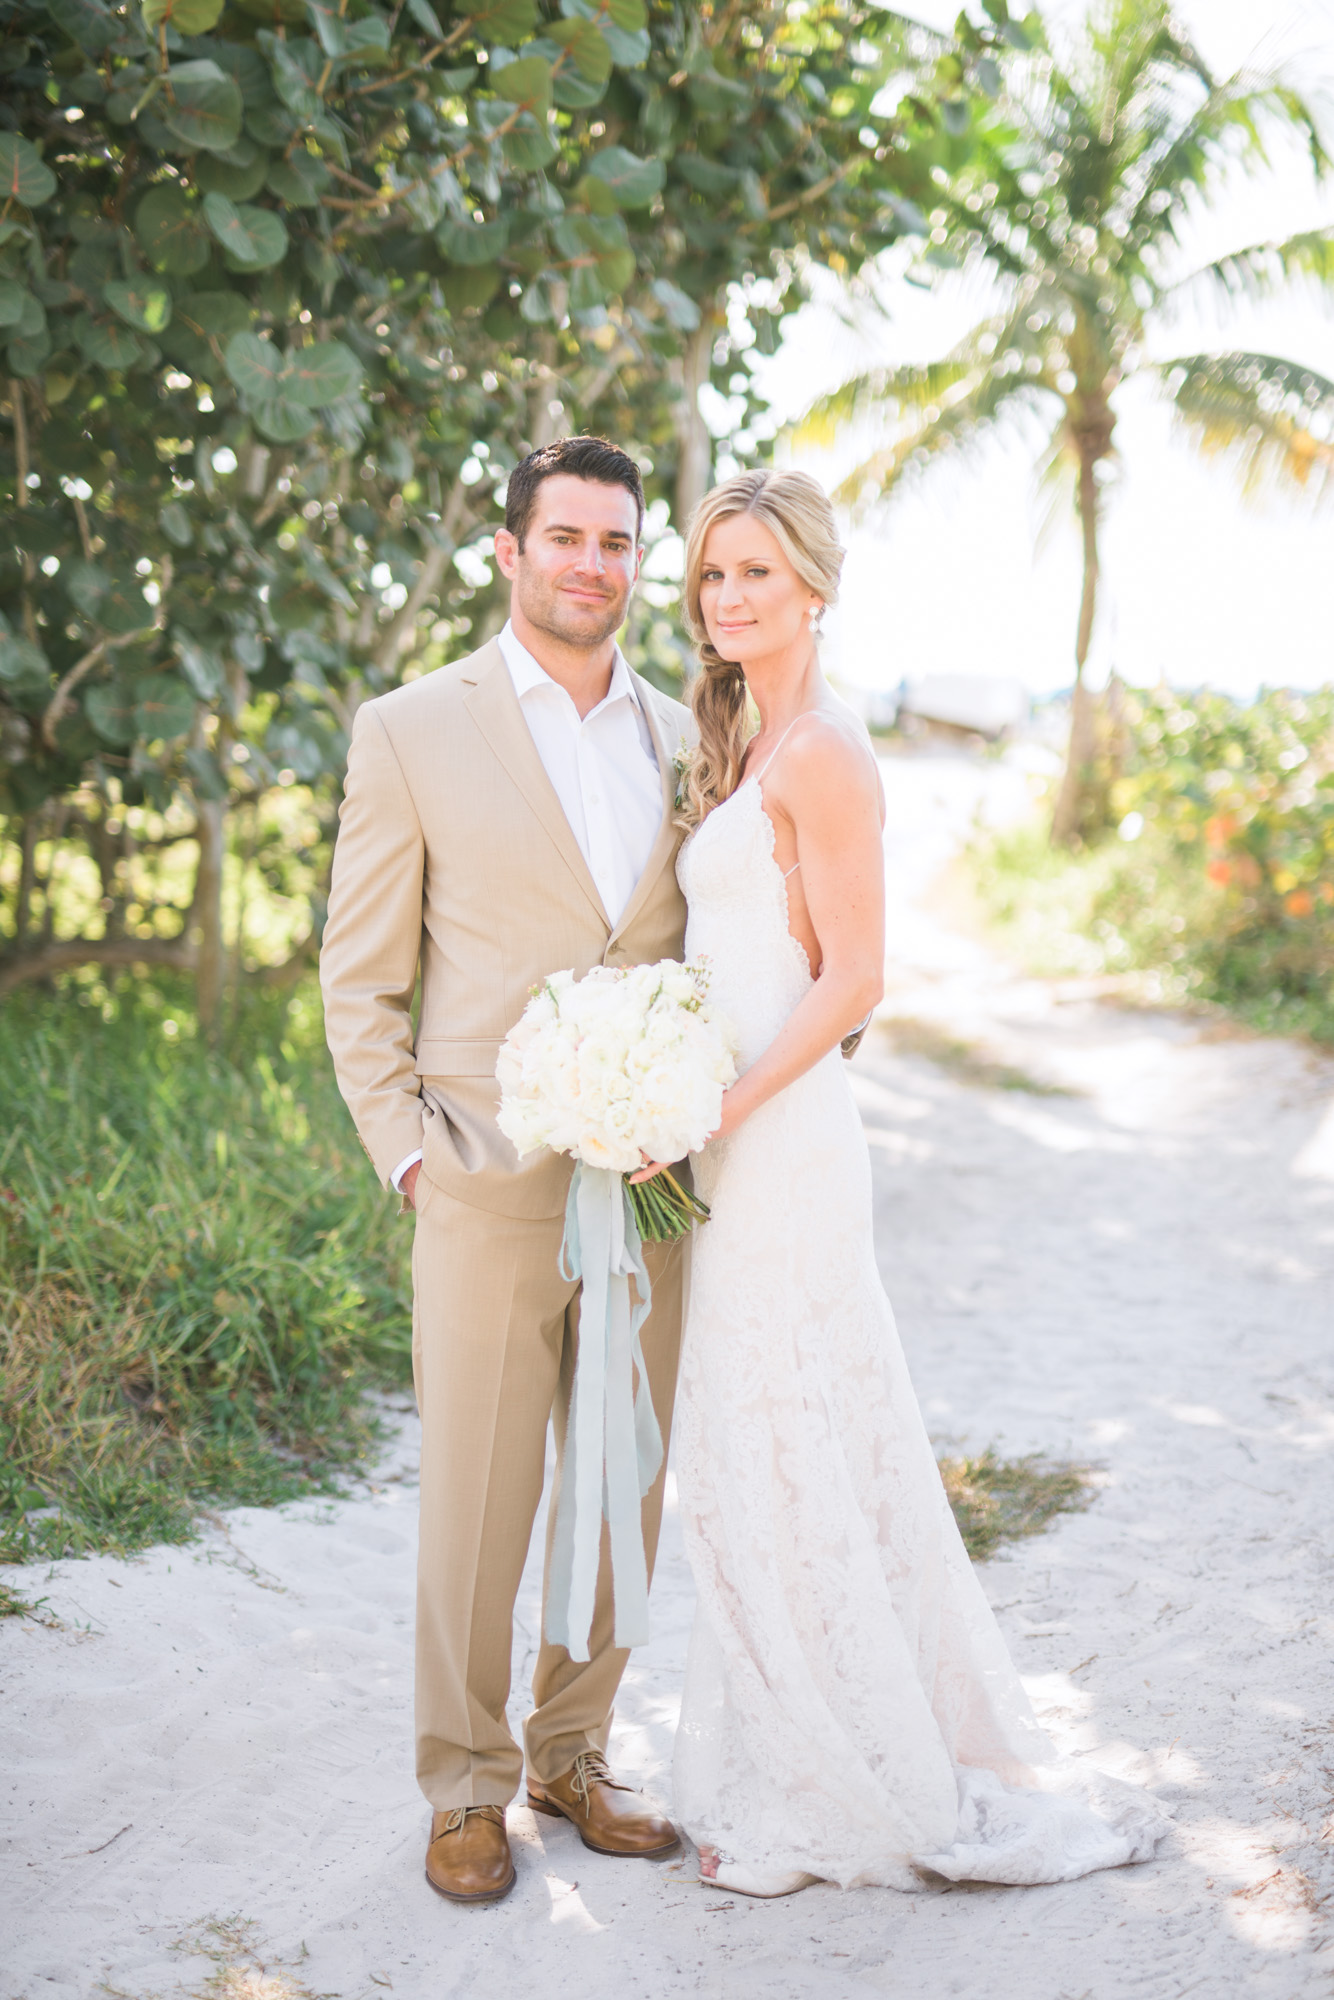 marco-beach-ocean-resort-naples-florida-wedding-photographer-hunter-ryan-photo-04942.jpg